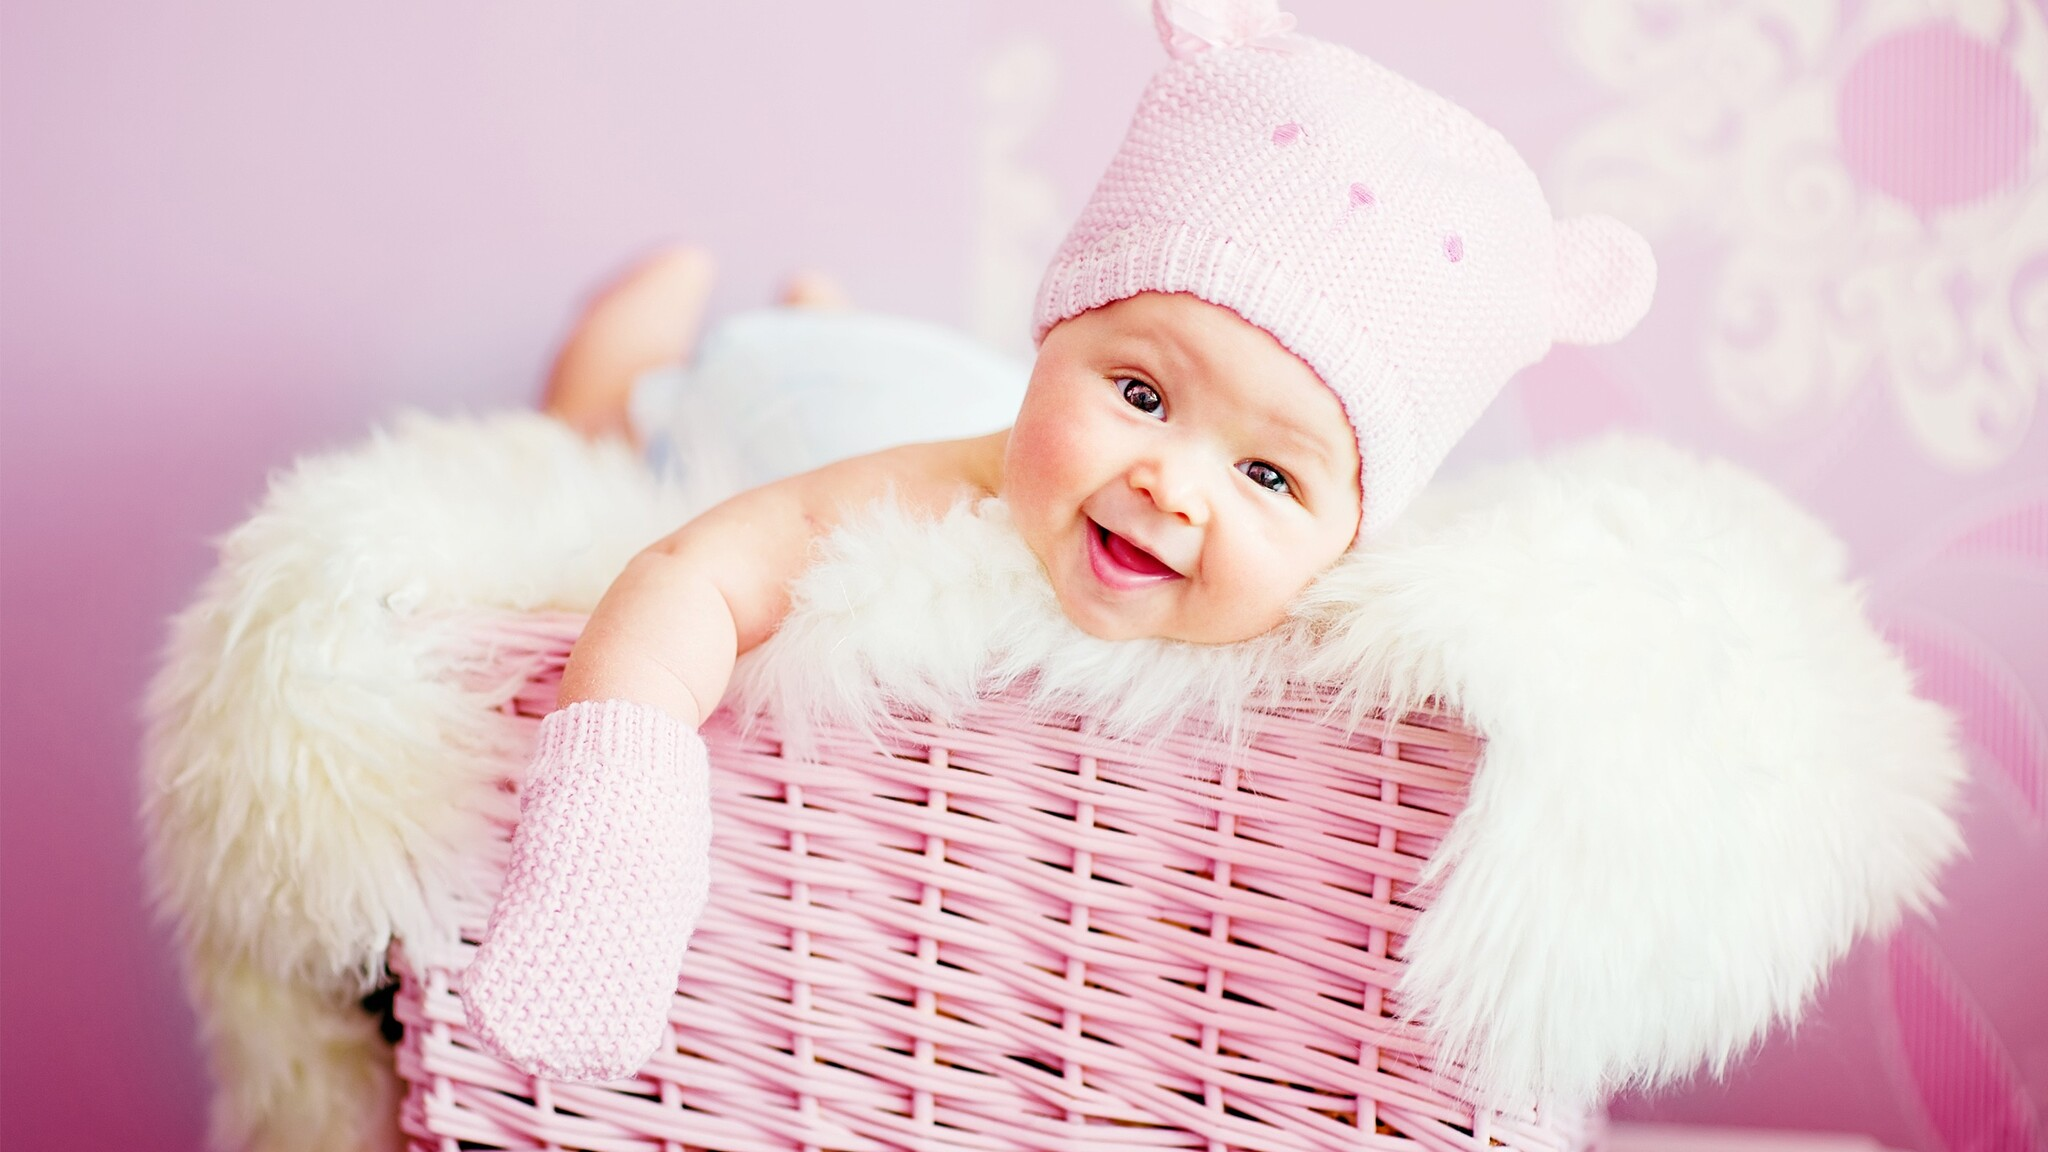 Laughing Baby Wallpapers